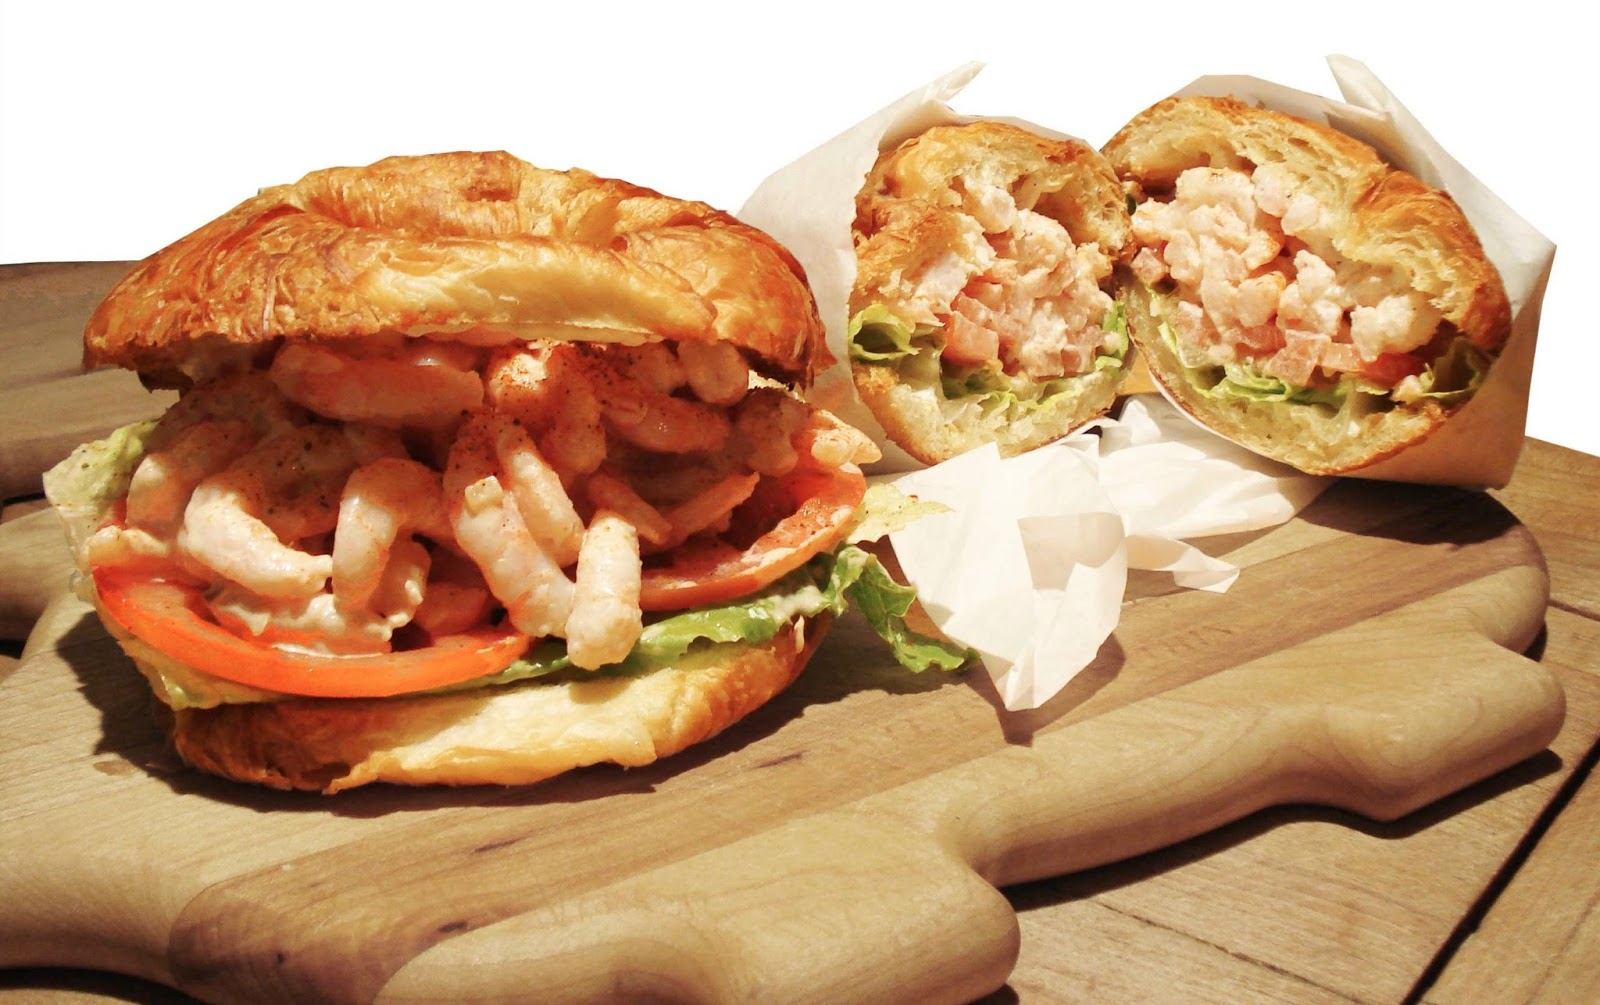 shrimp salad croissant sandwiches mayonnaise healthy tomatoes lettuce red onion